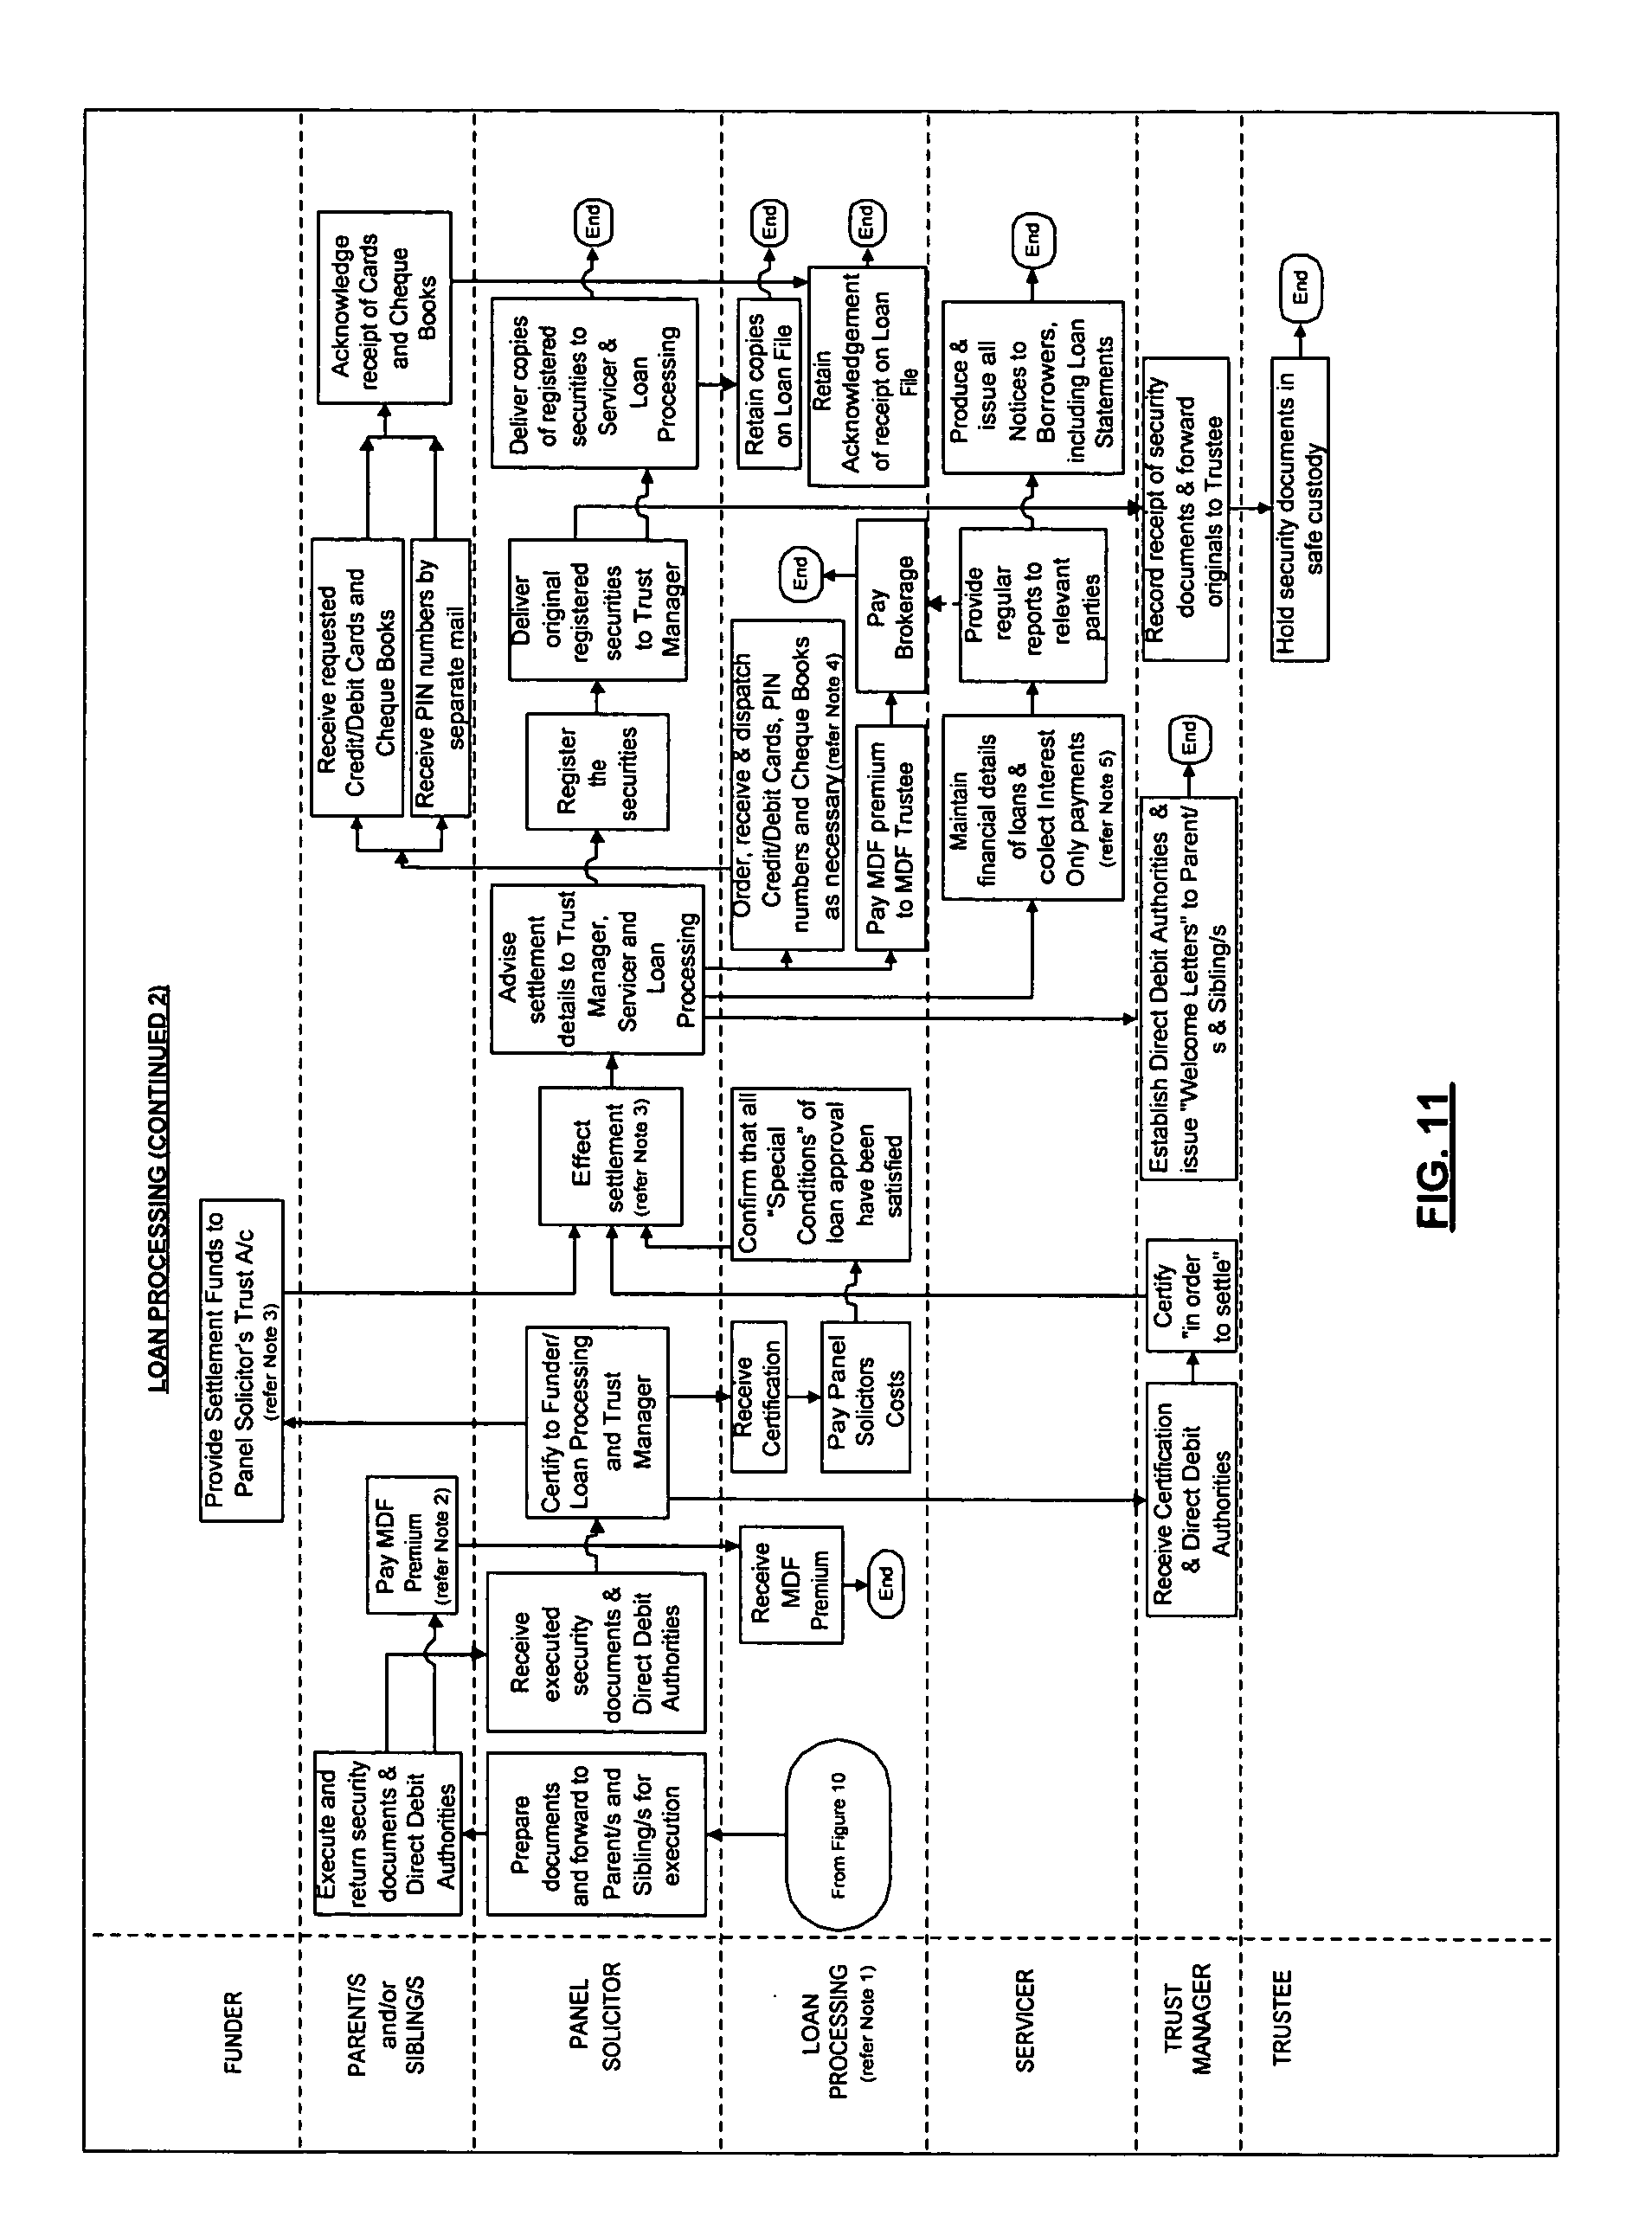 Patent Us20060248004 Method And System For Administering A Loan